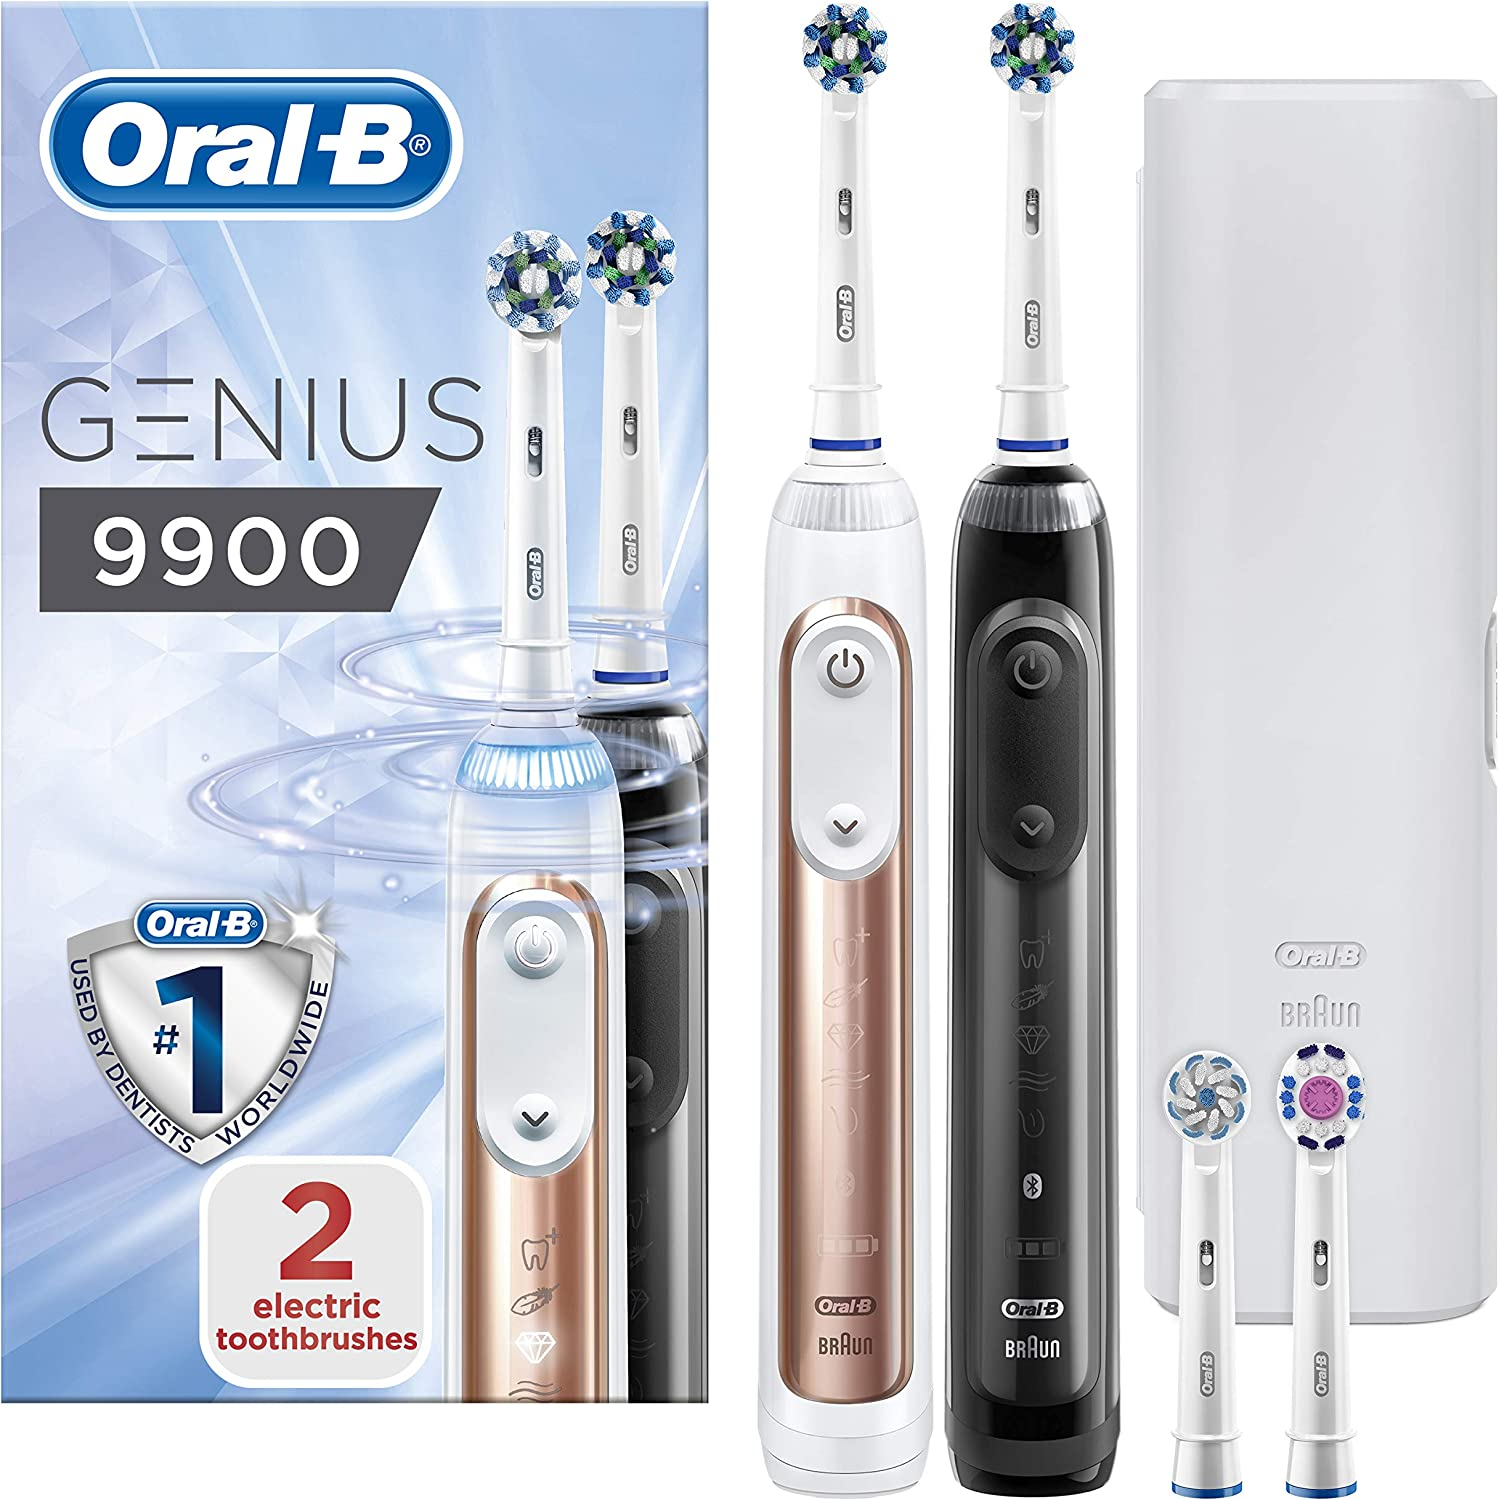 Oral B Genius 9900 Set of 2 Electric Toothbrushes Rechargeable, 2 Handles, Rose Gold and Black, 6 Modes with Whitening and Sensitive, Pressure Sensor,